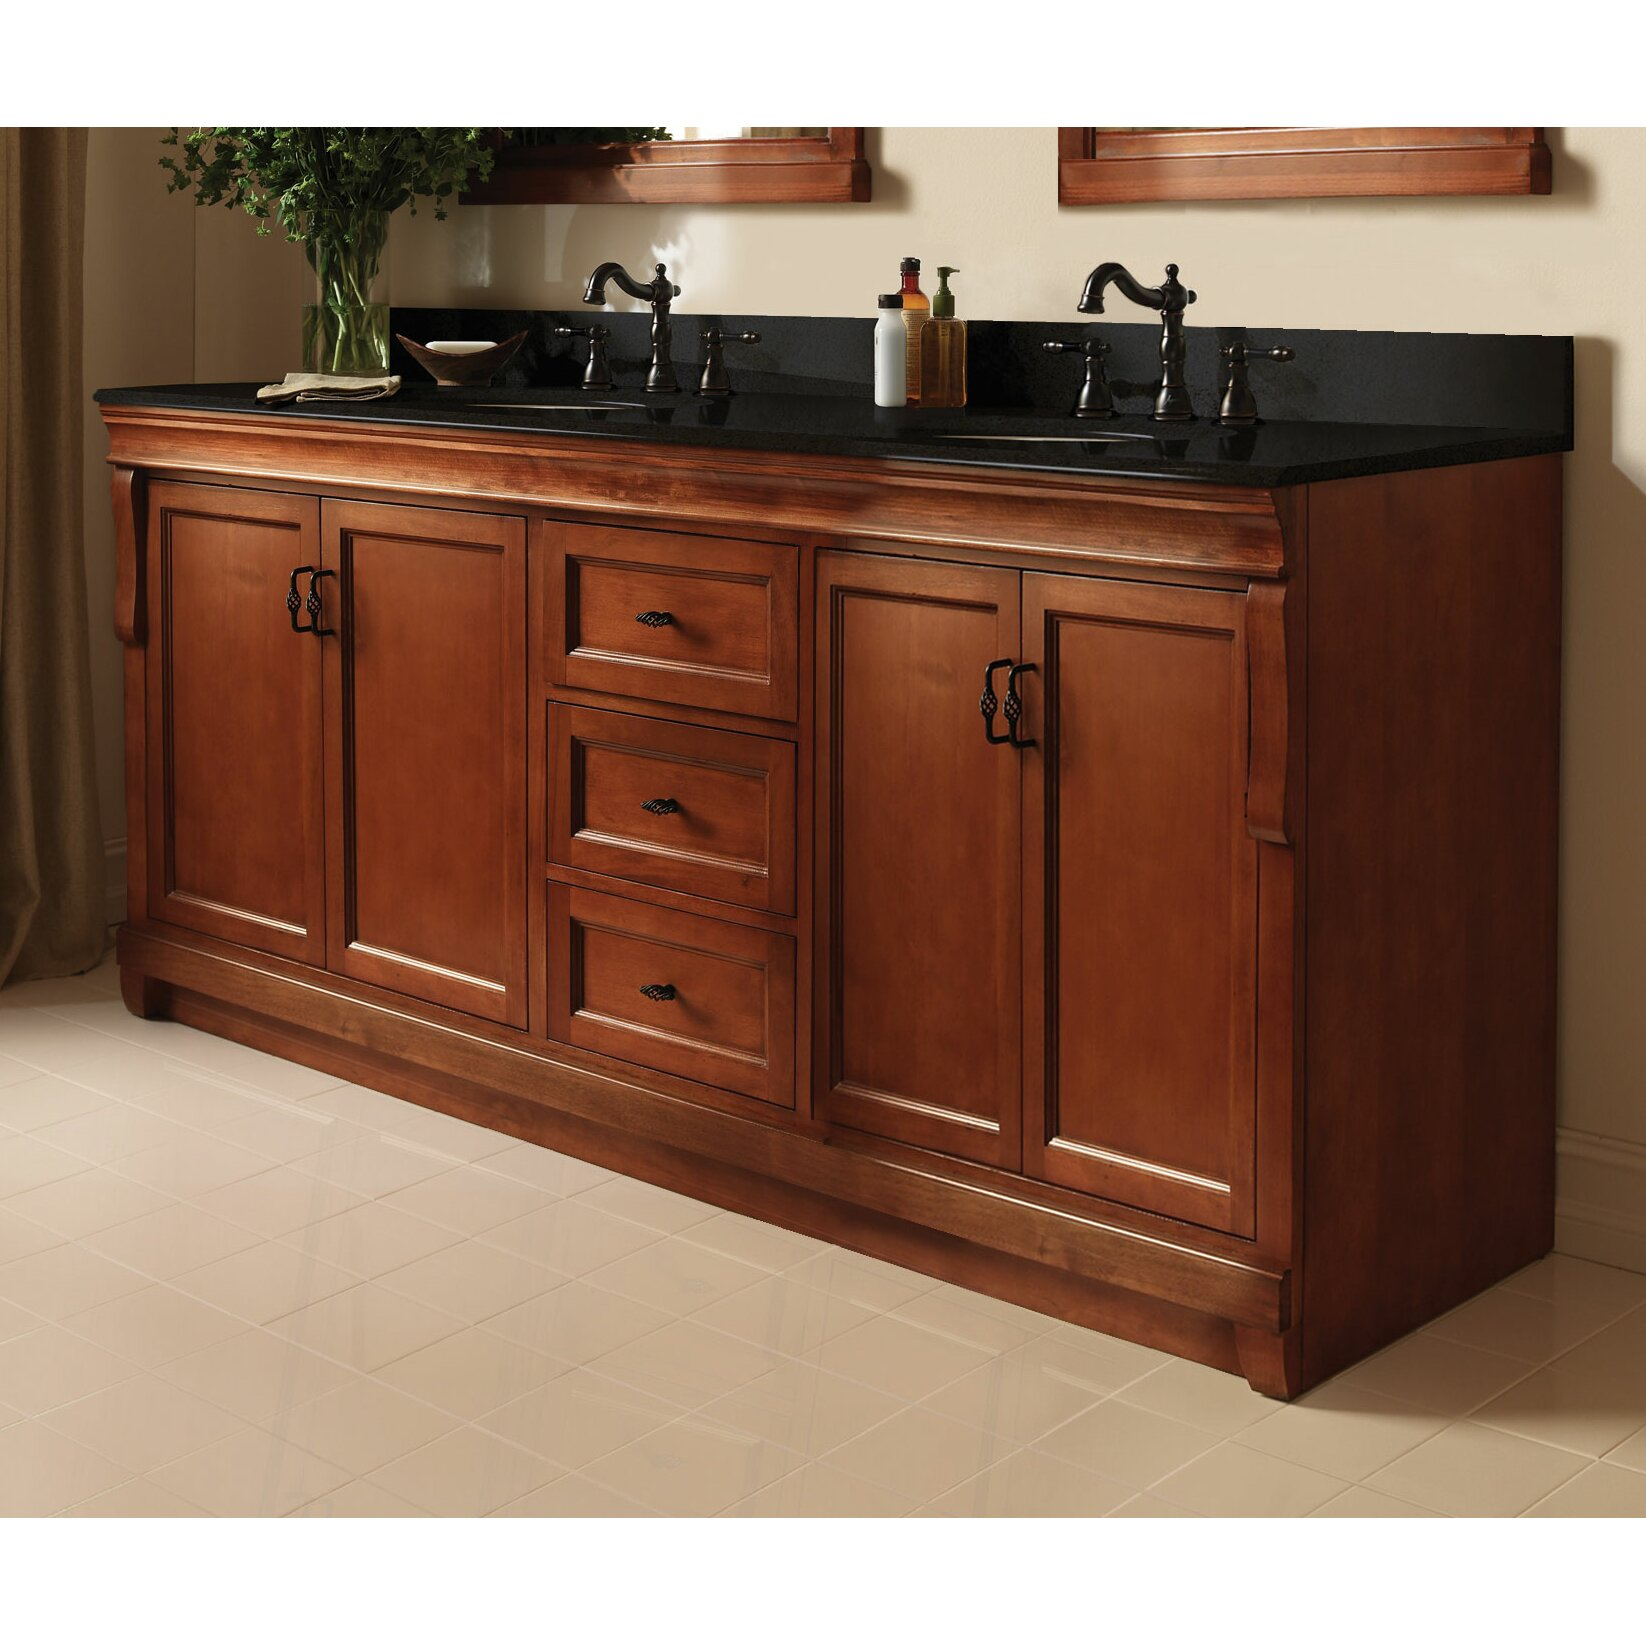 Foremost naples 60 double bathroom vanity base reviews - Wayfair furniture bathroom vanities ...